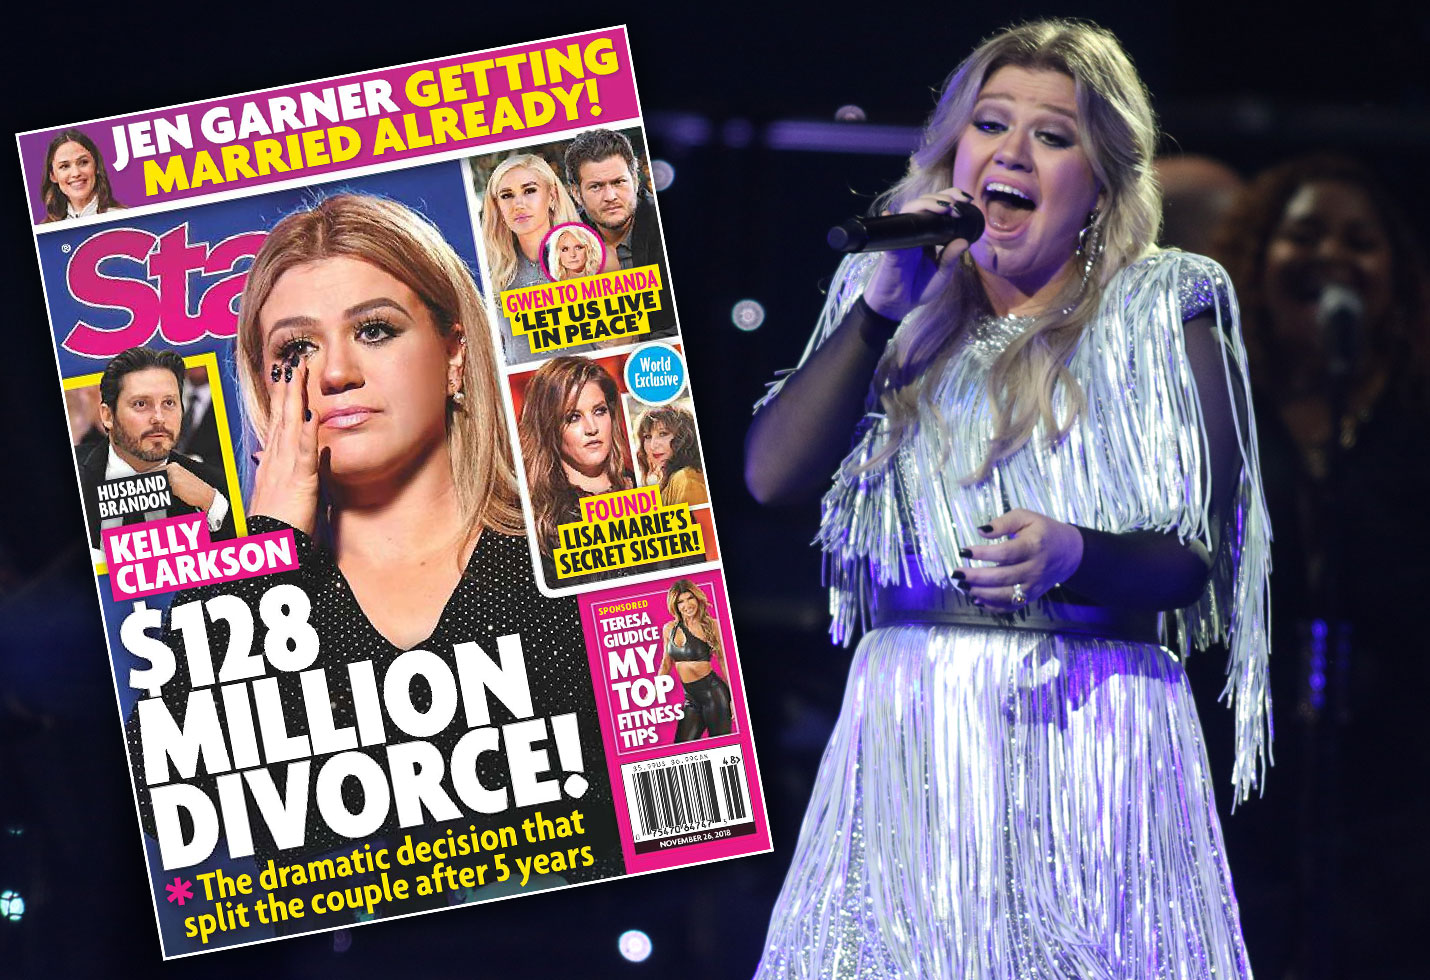 Kelly Clarkson divorce lawyers husband Brandon Blackstock